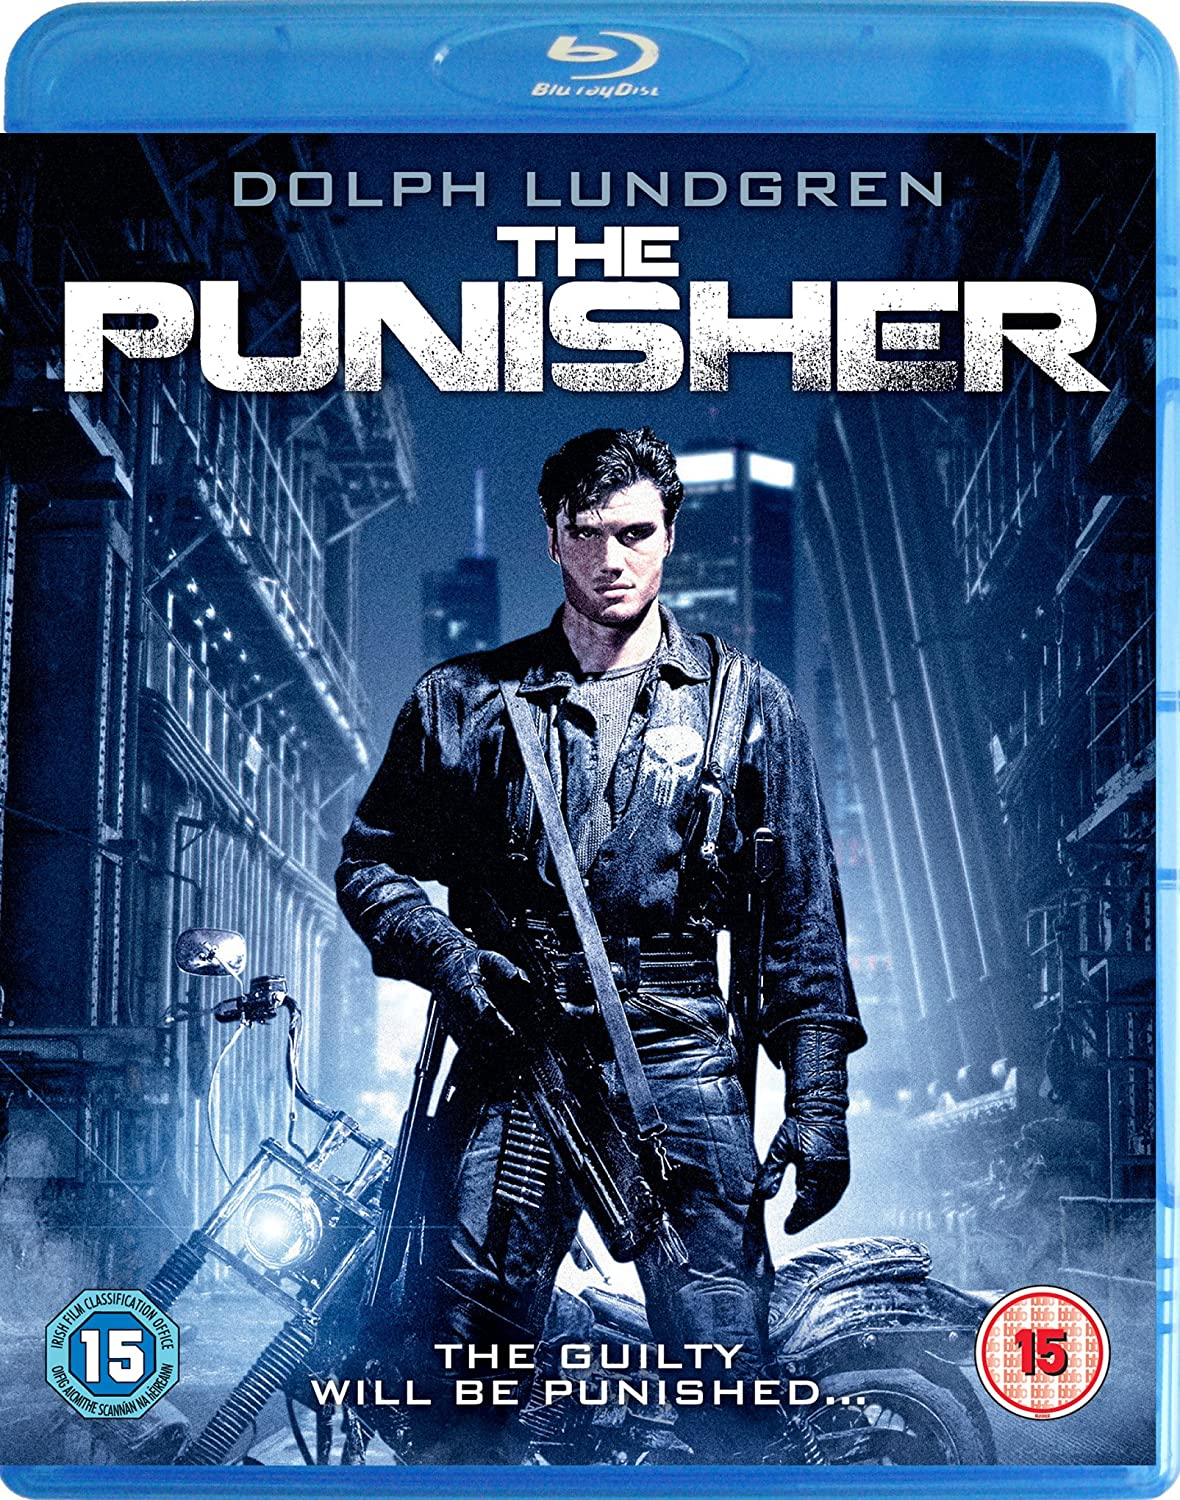 LUNDGREN DOLPH TÉLÉCHARGER PUNISHER